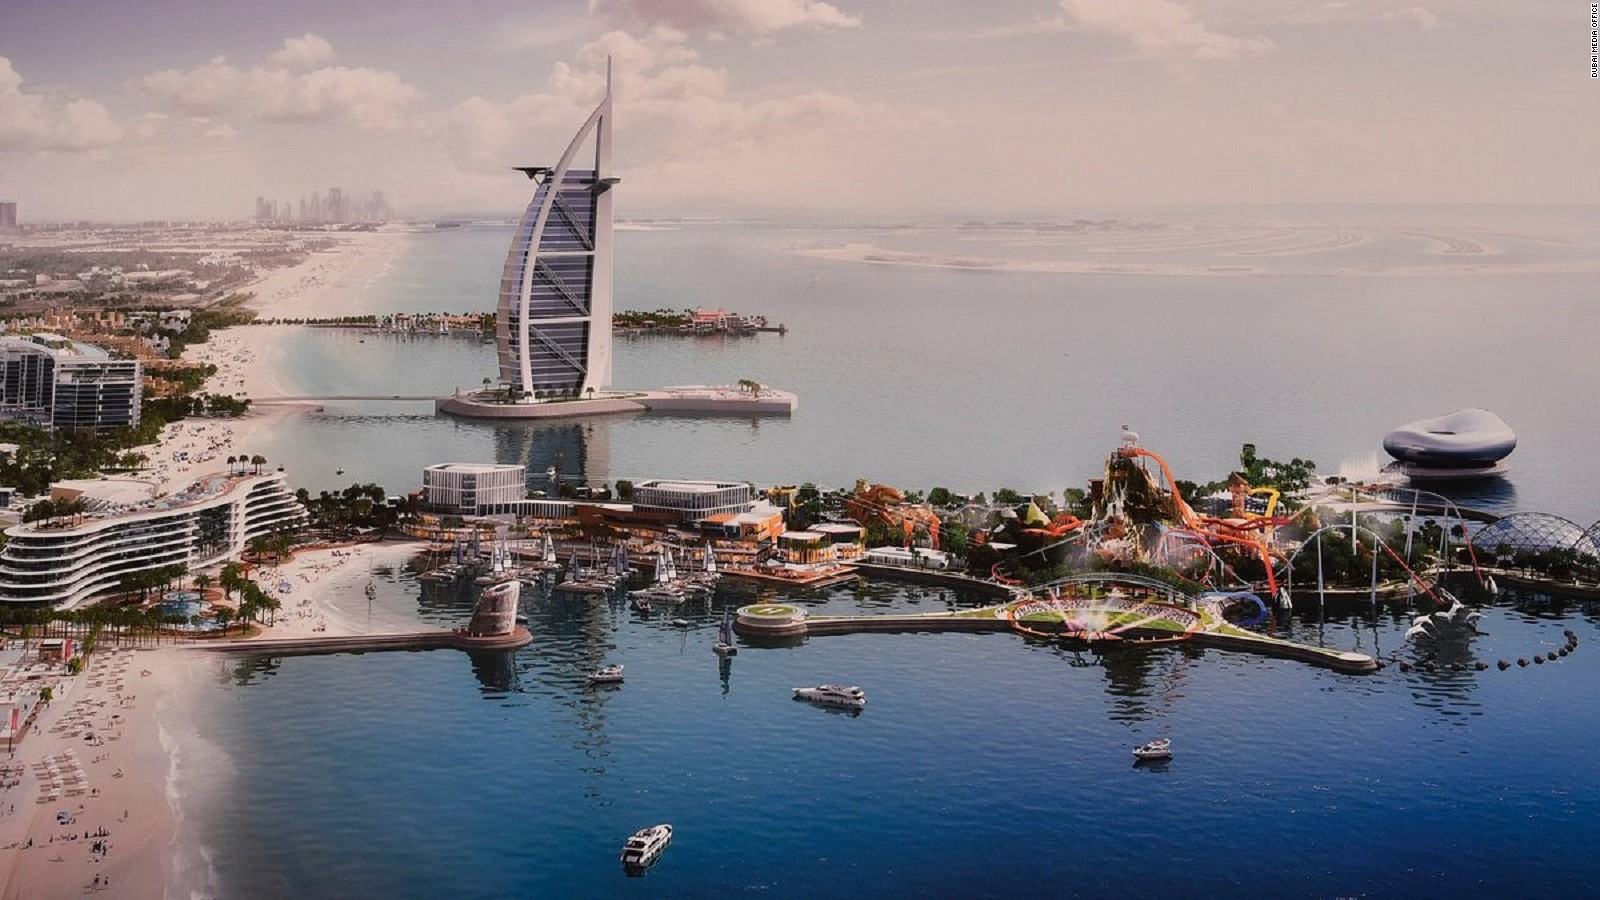 Dubai, UAE is growing again and again it's building deeper direct into the sea